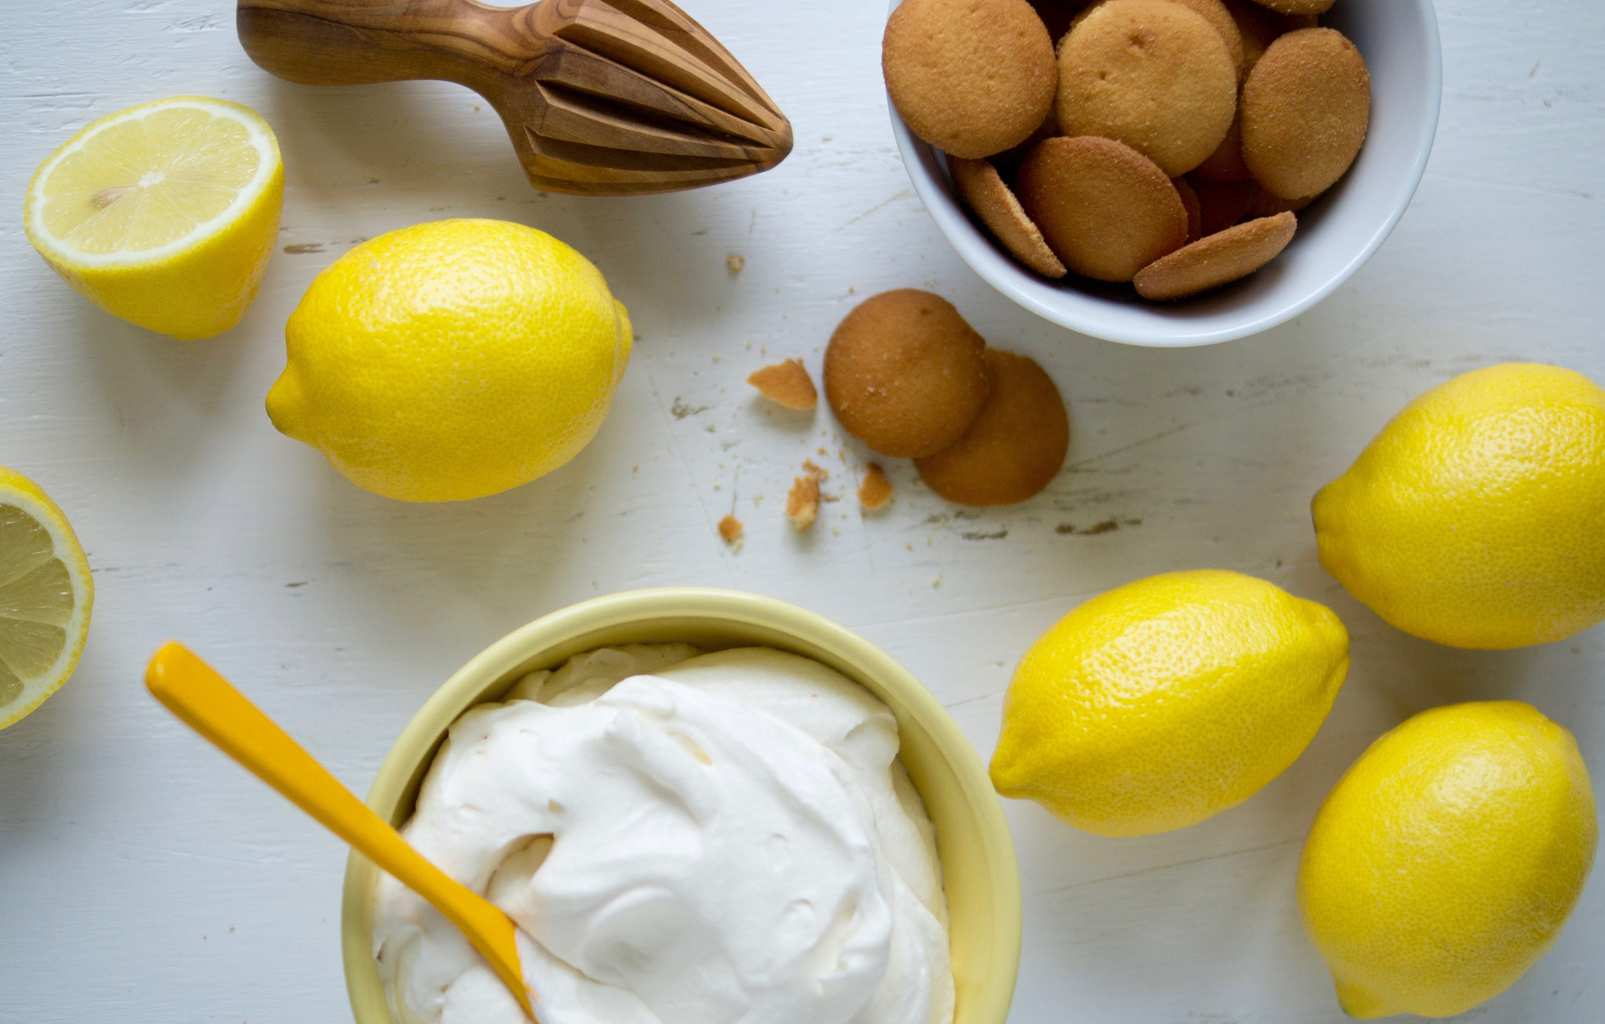 No-Bake Lemon Icebox Pie ingredients.